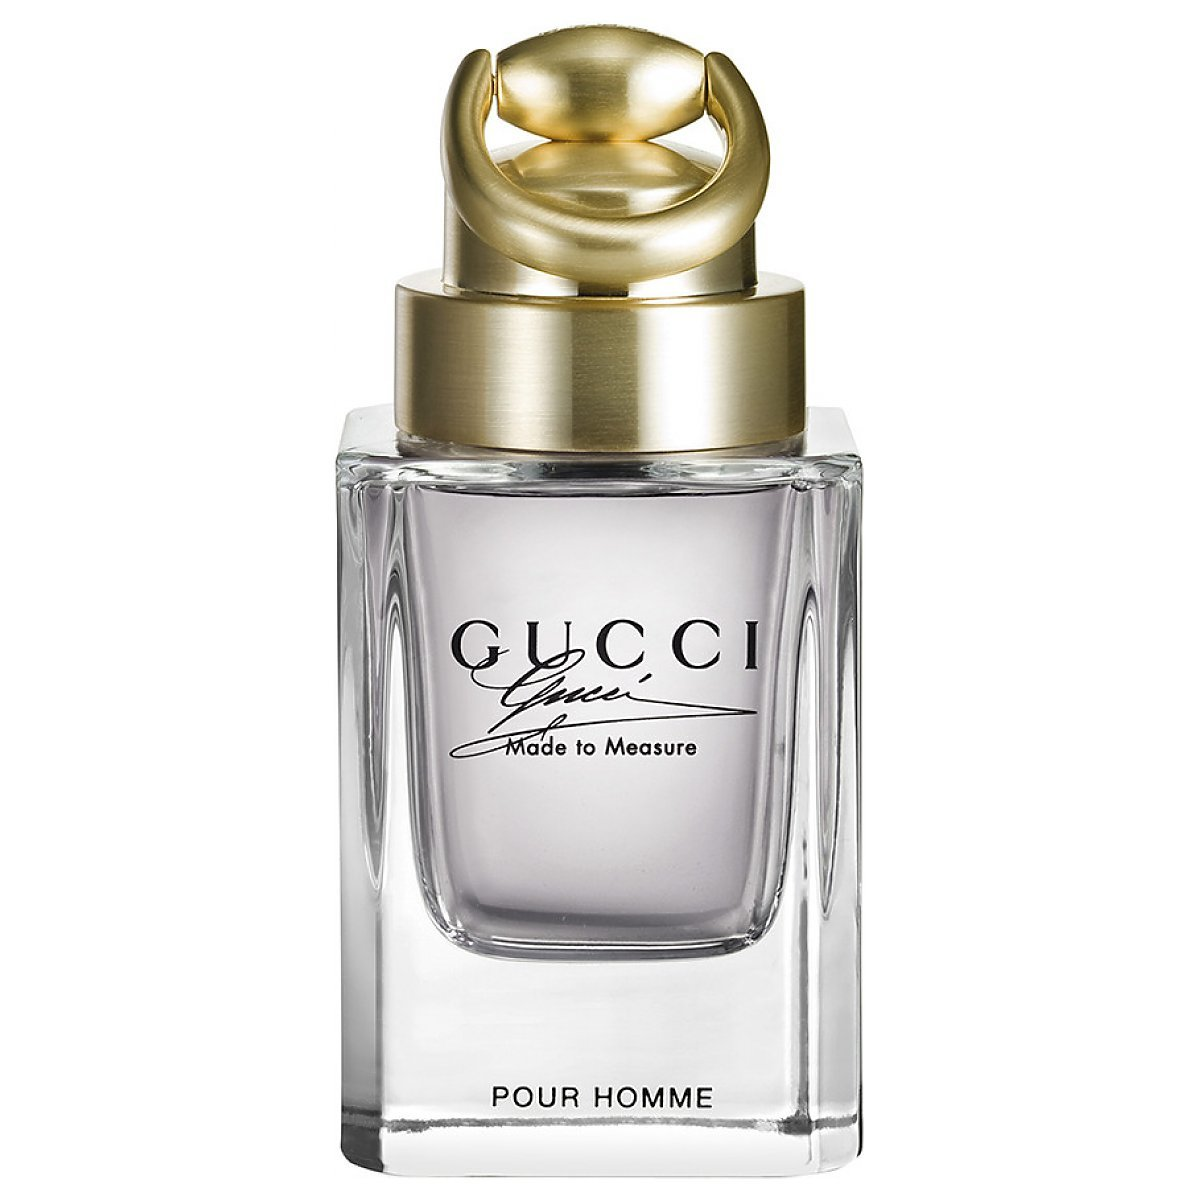 0d07a23a37 Gucci Made to Measure Woda toaletowa spray 50ml - Perfumeria Dolce.pl